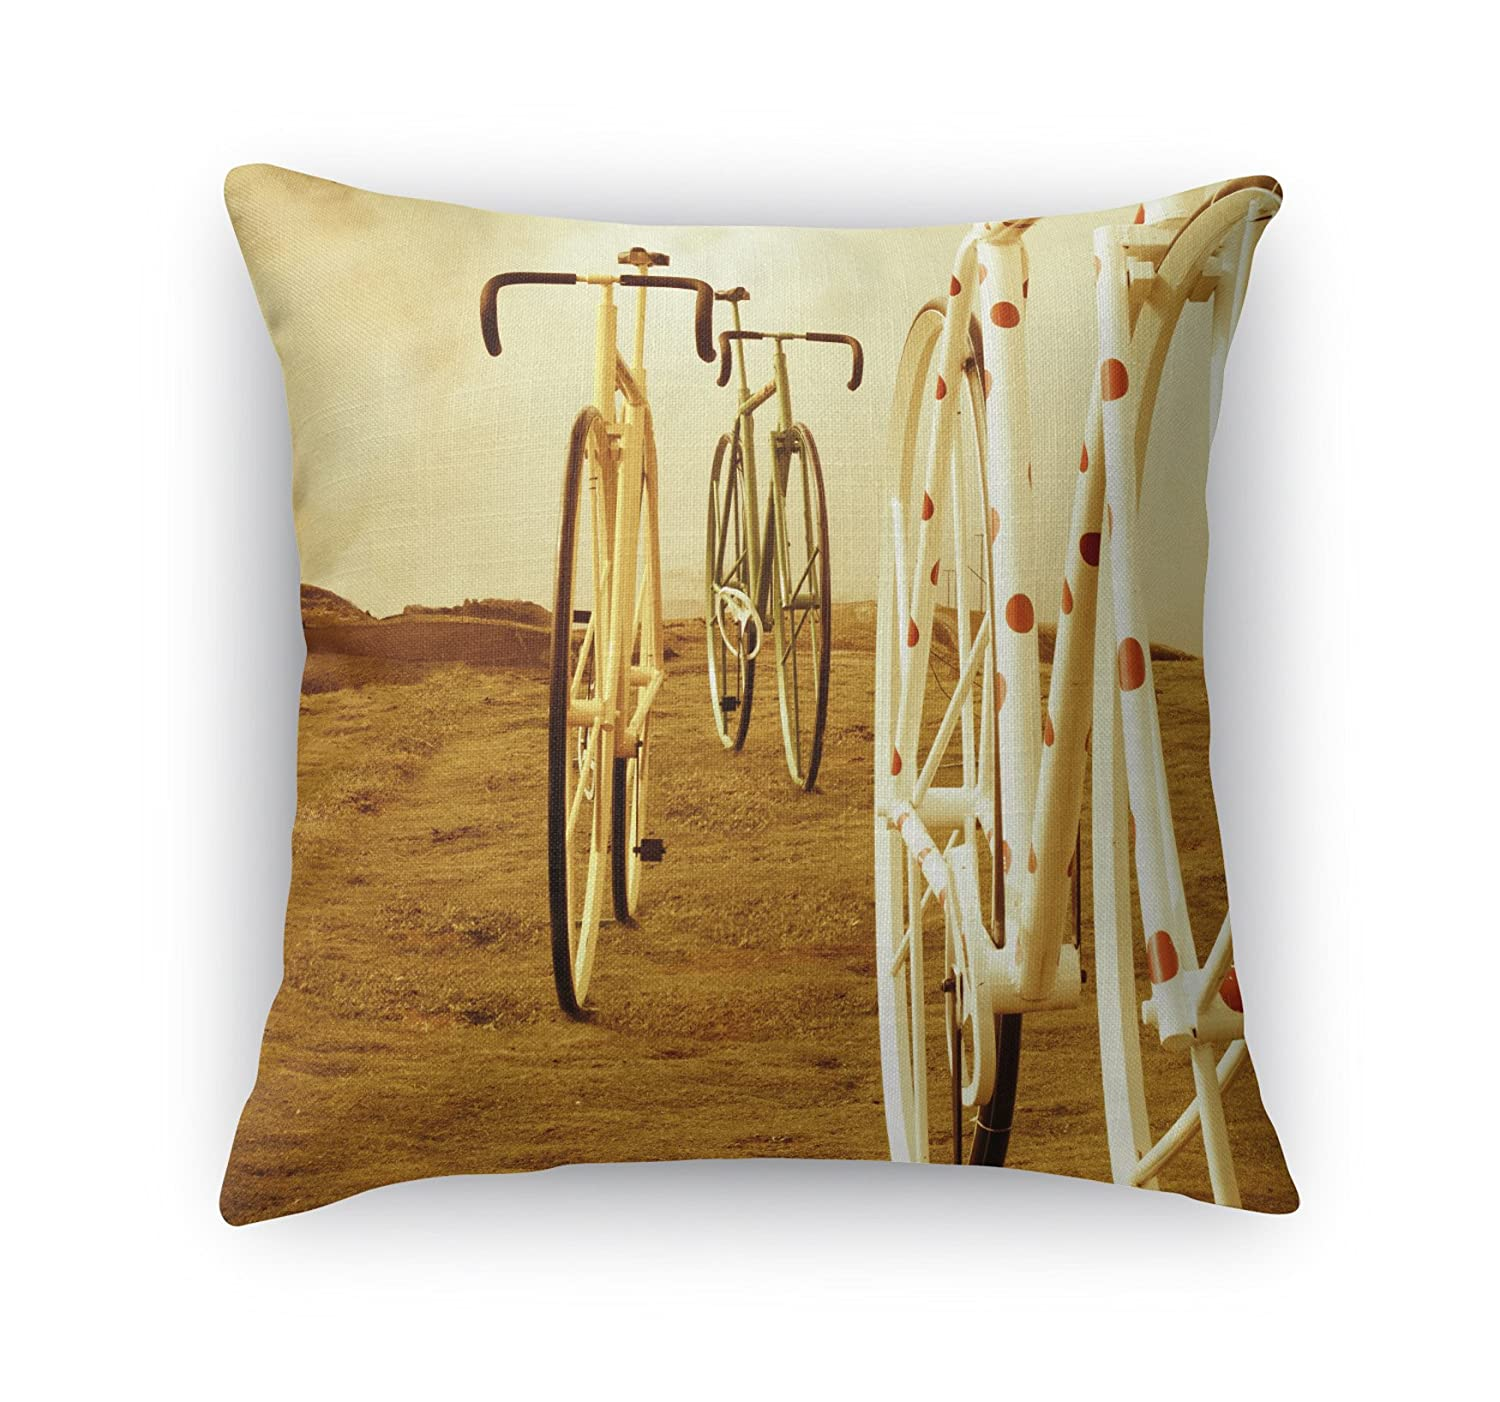 KAVKA Designs Ride On Accent Pillow, (Brown/Tan/Red/Ivory) - Heartland Collection, Size: 16X16X6 - (BOBAVC067DI16)